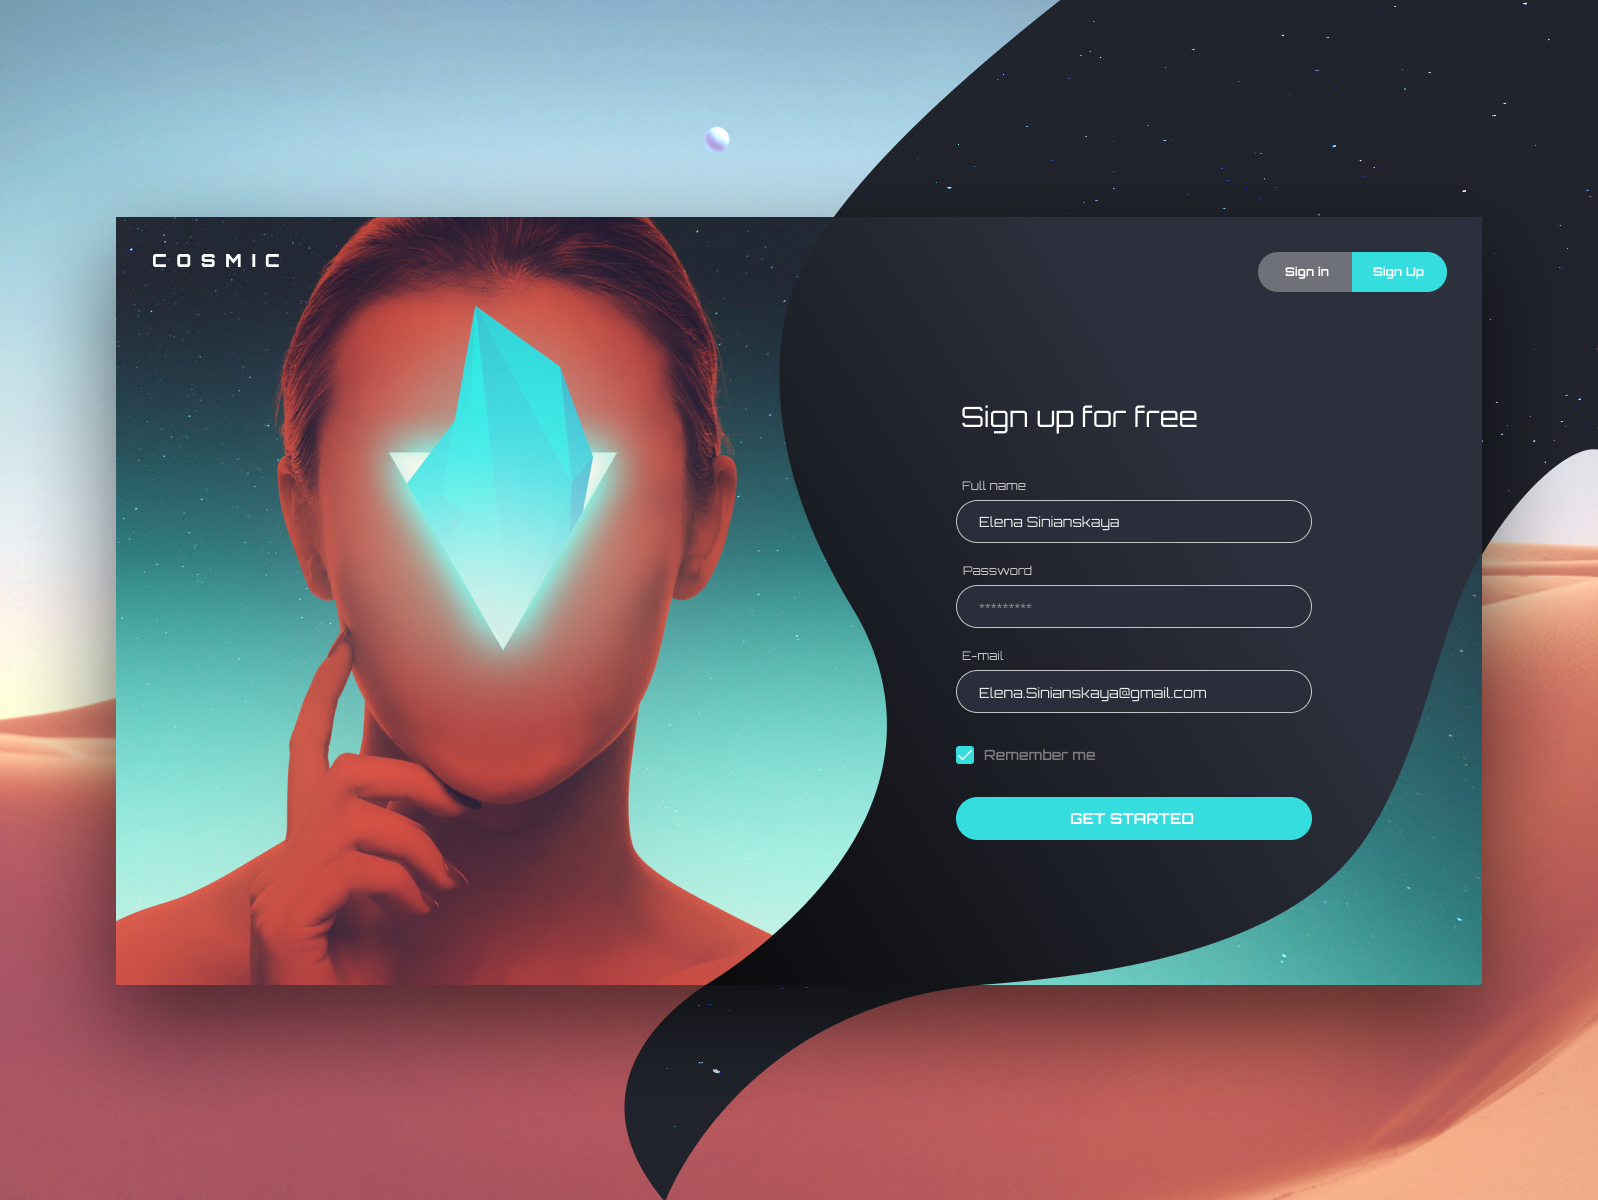 Cosmic Sign Up future space orbit font beautiful ui form design form bright color design bright colors web design sign in form fantastic surrealism sign up form sign up sign in cosmos cosmo